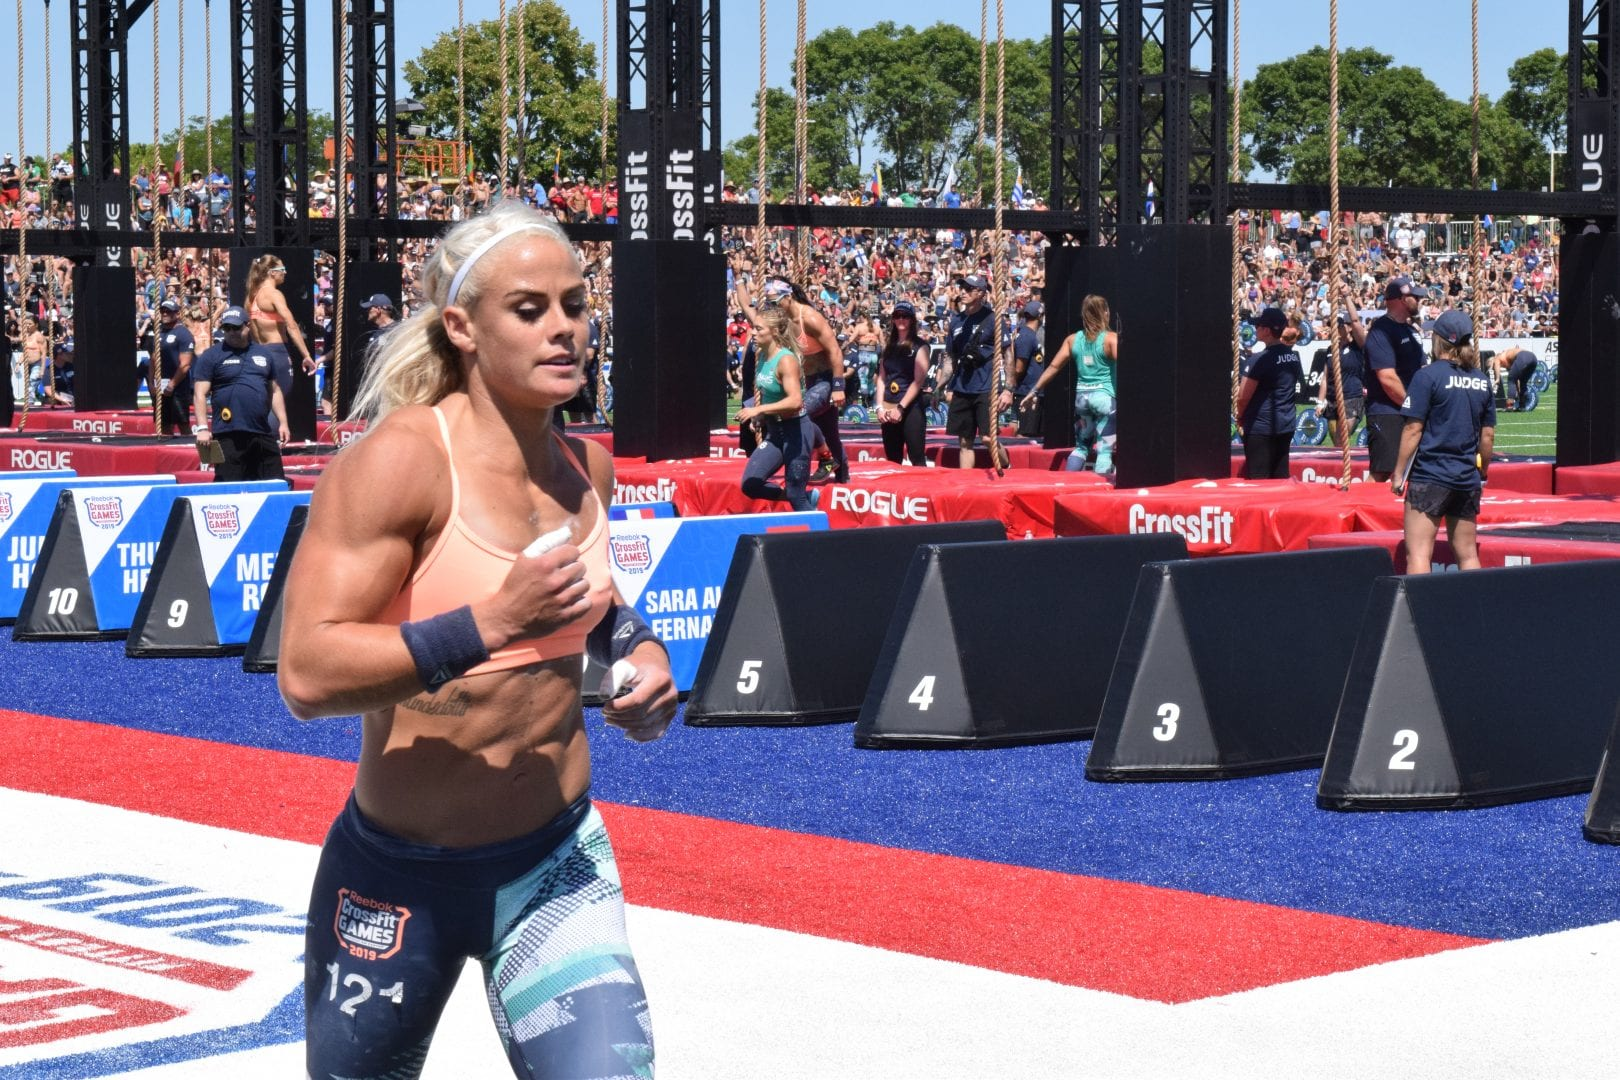 Sara Sigmundsdottir takes a lap between rounds of legless rope climbs at the 2019 CrossFit Games